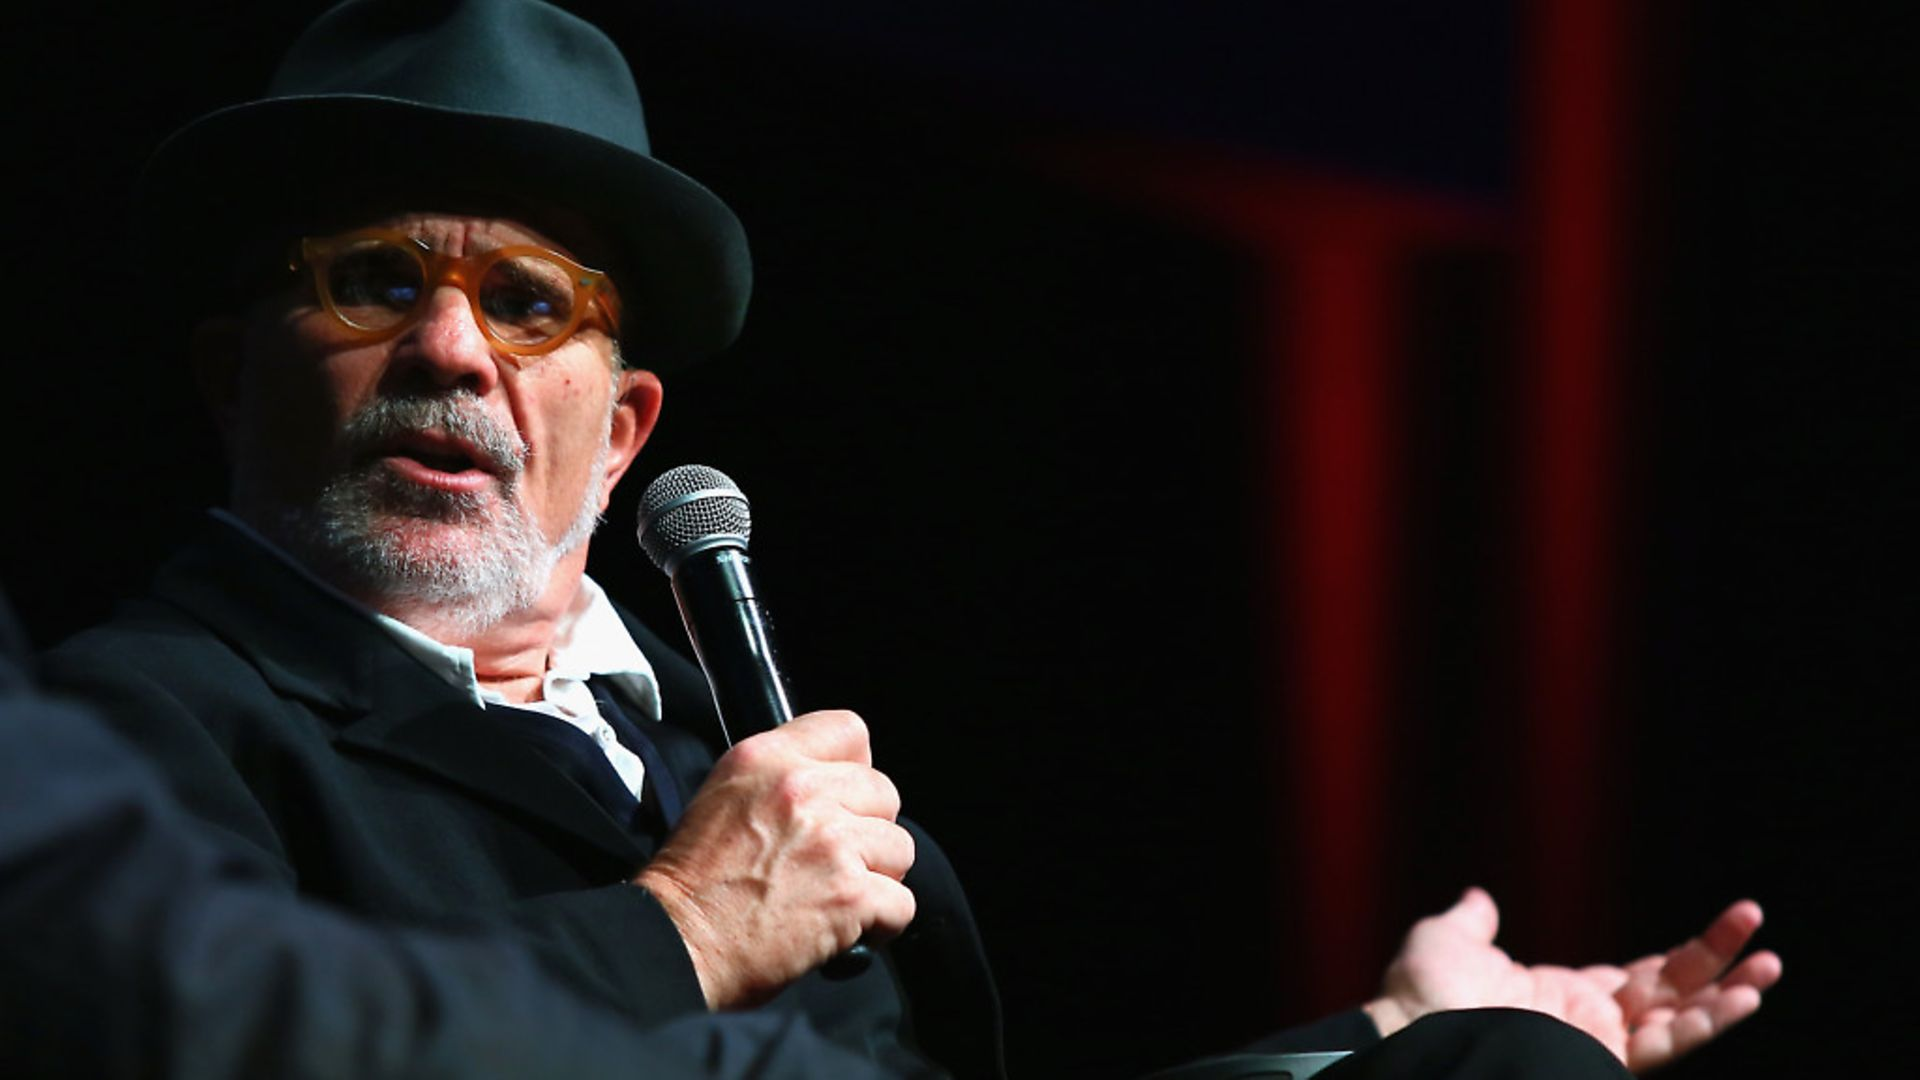 David Mamet meets the audience during the 11th Rome Film Festival at Auditorium Parco Della Musica in 2016. Photo: Ernesto Ruscio/Getty Images - Credit: Getty Images